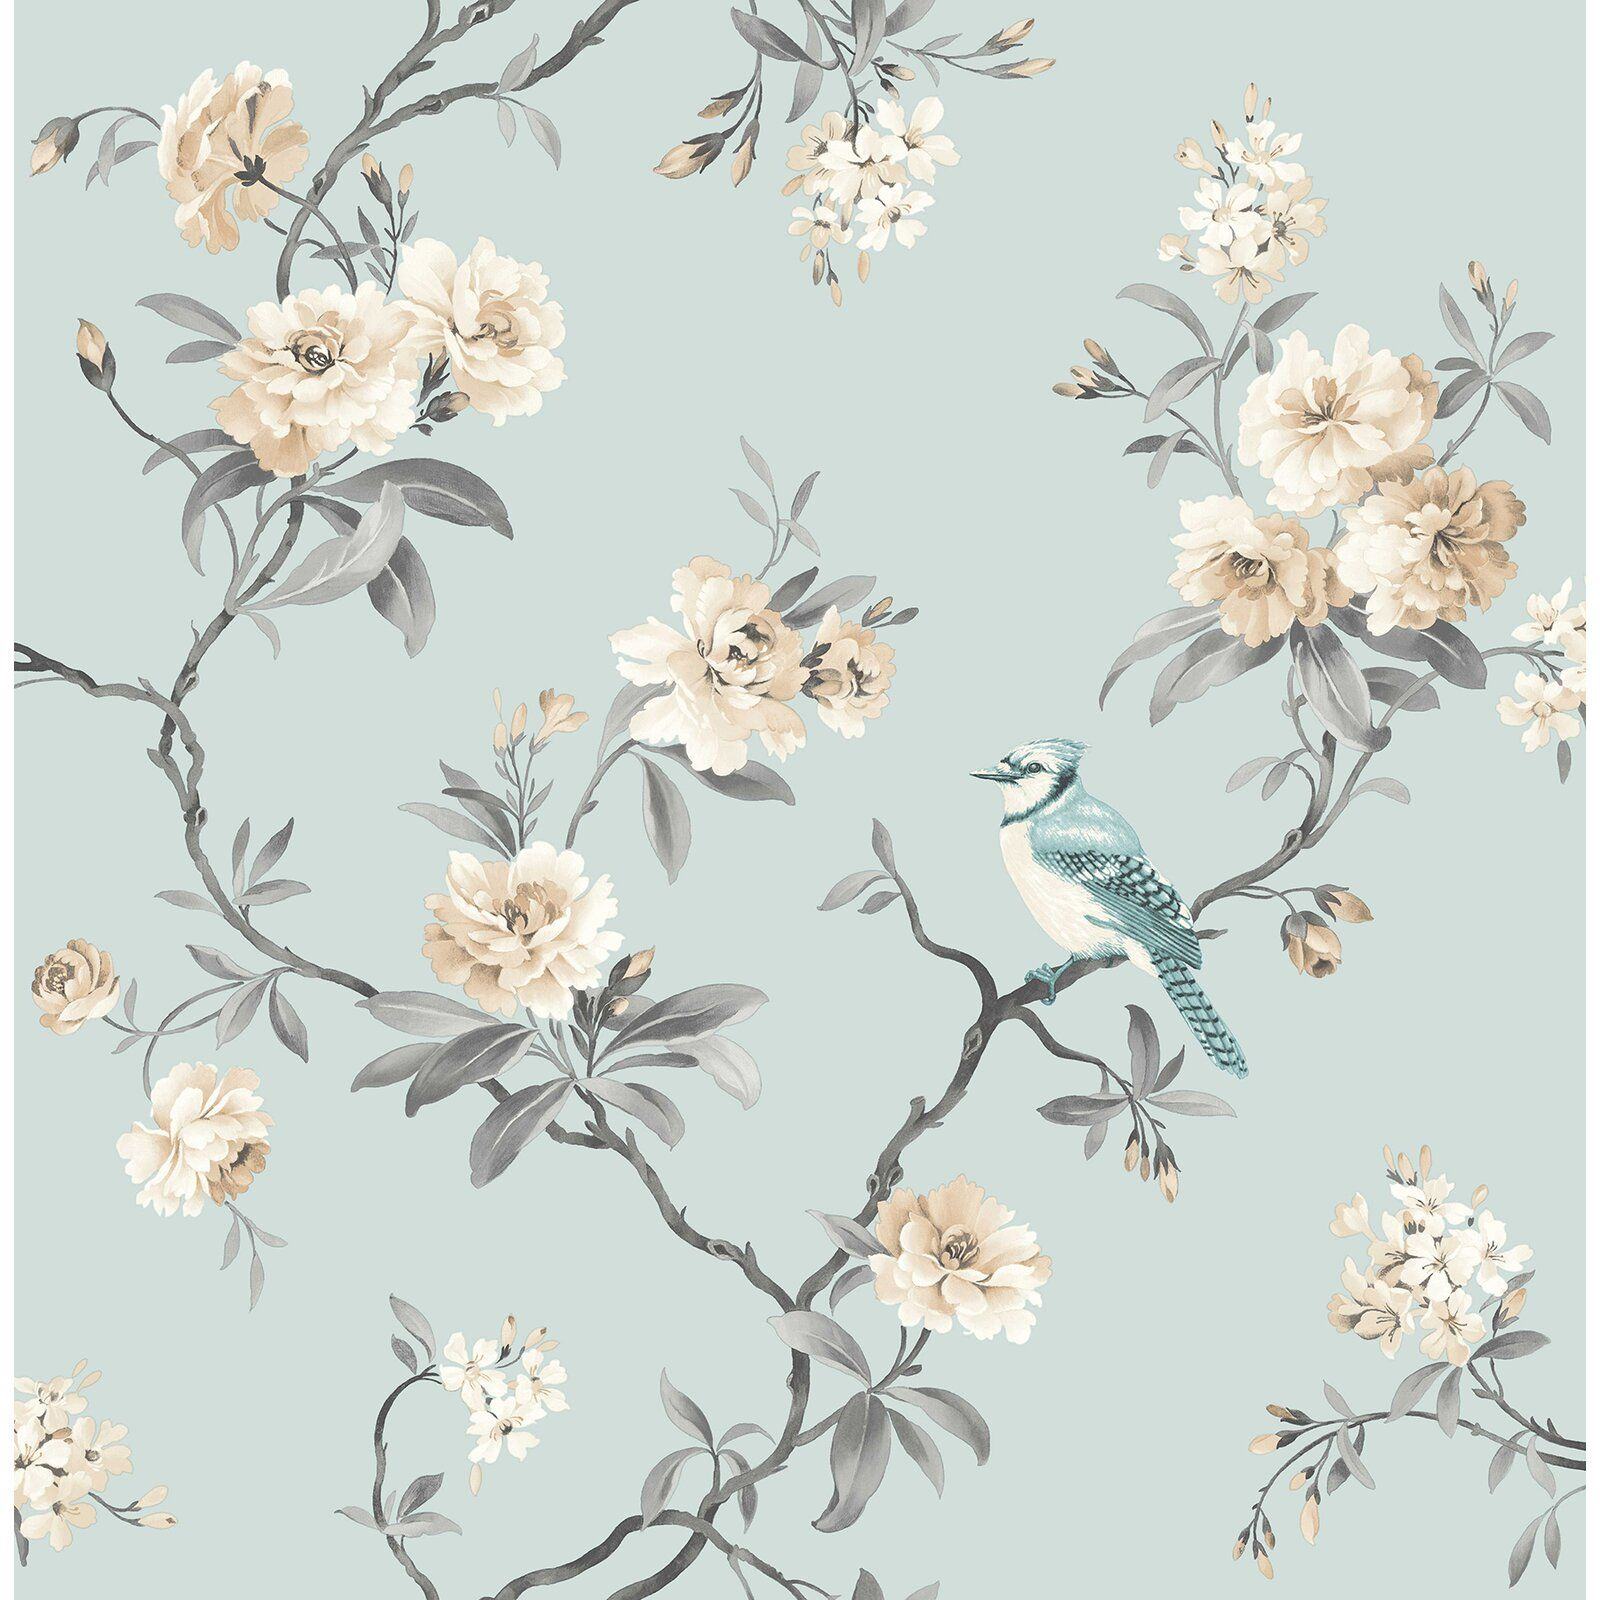 Chinoiserie Floral 33 X 20 5 Wallpaper Roll Blue Floral